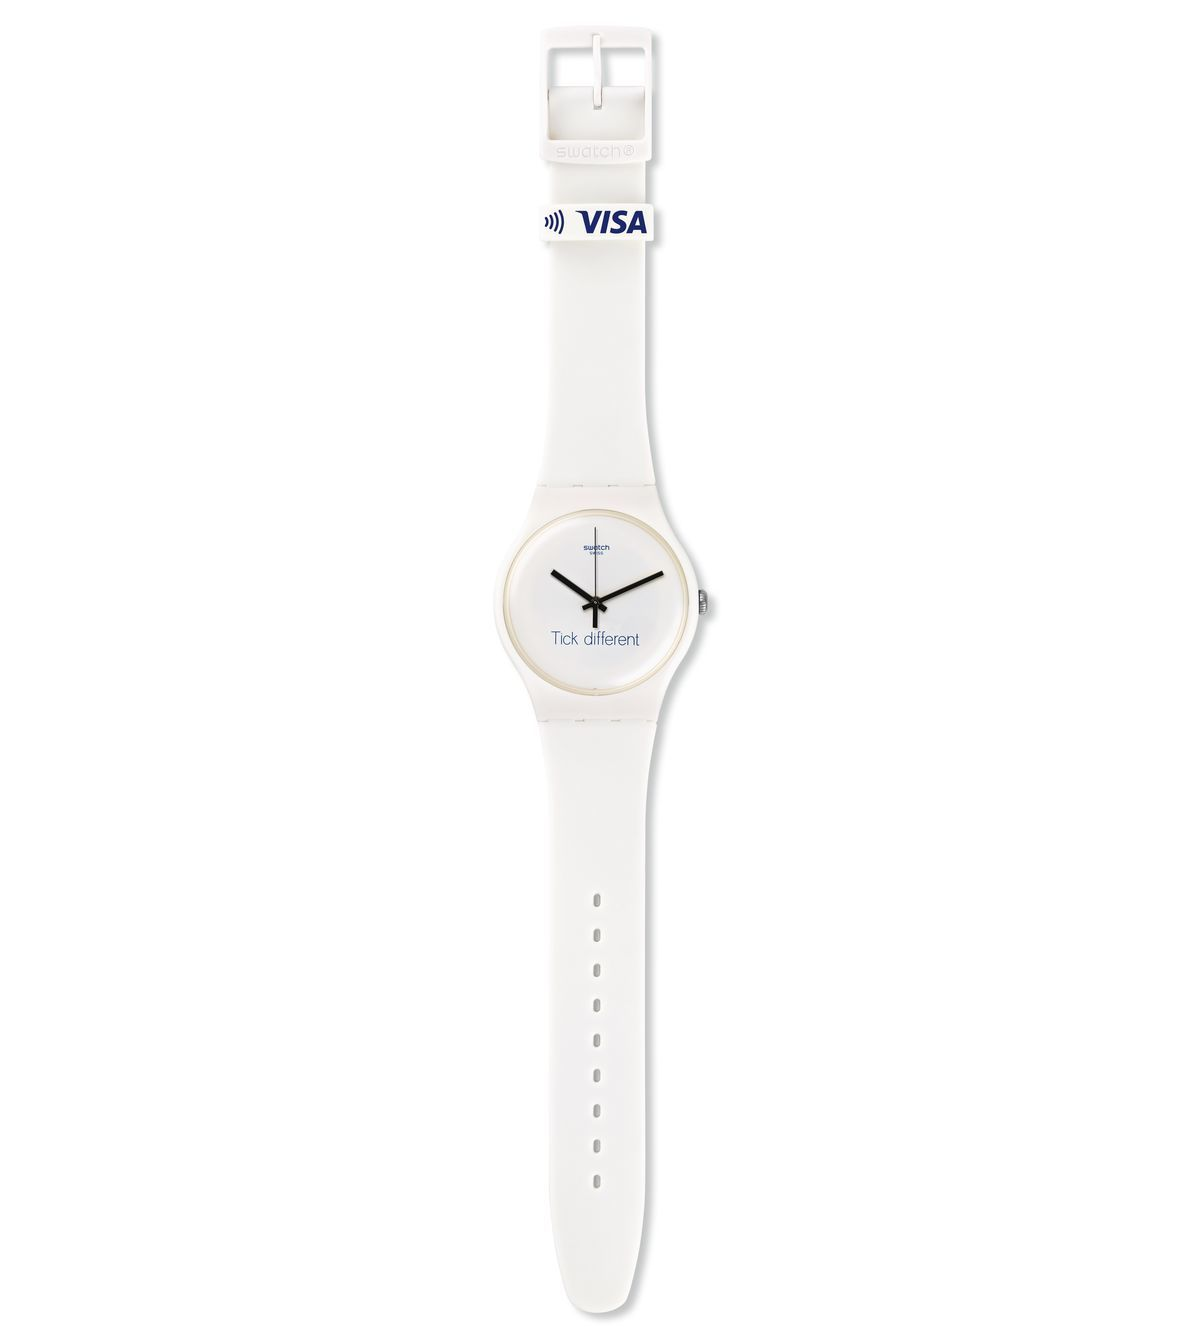 SWATCH BELLAMY TICK DIFFERENT - SVIW102-5000